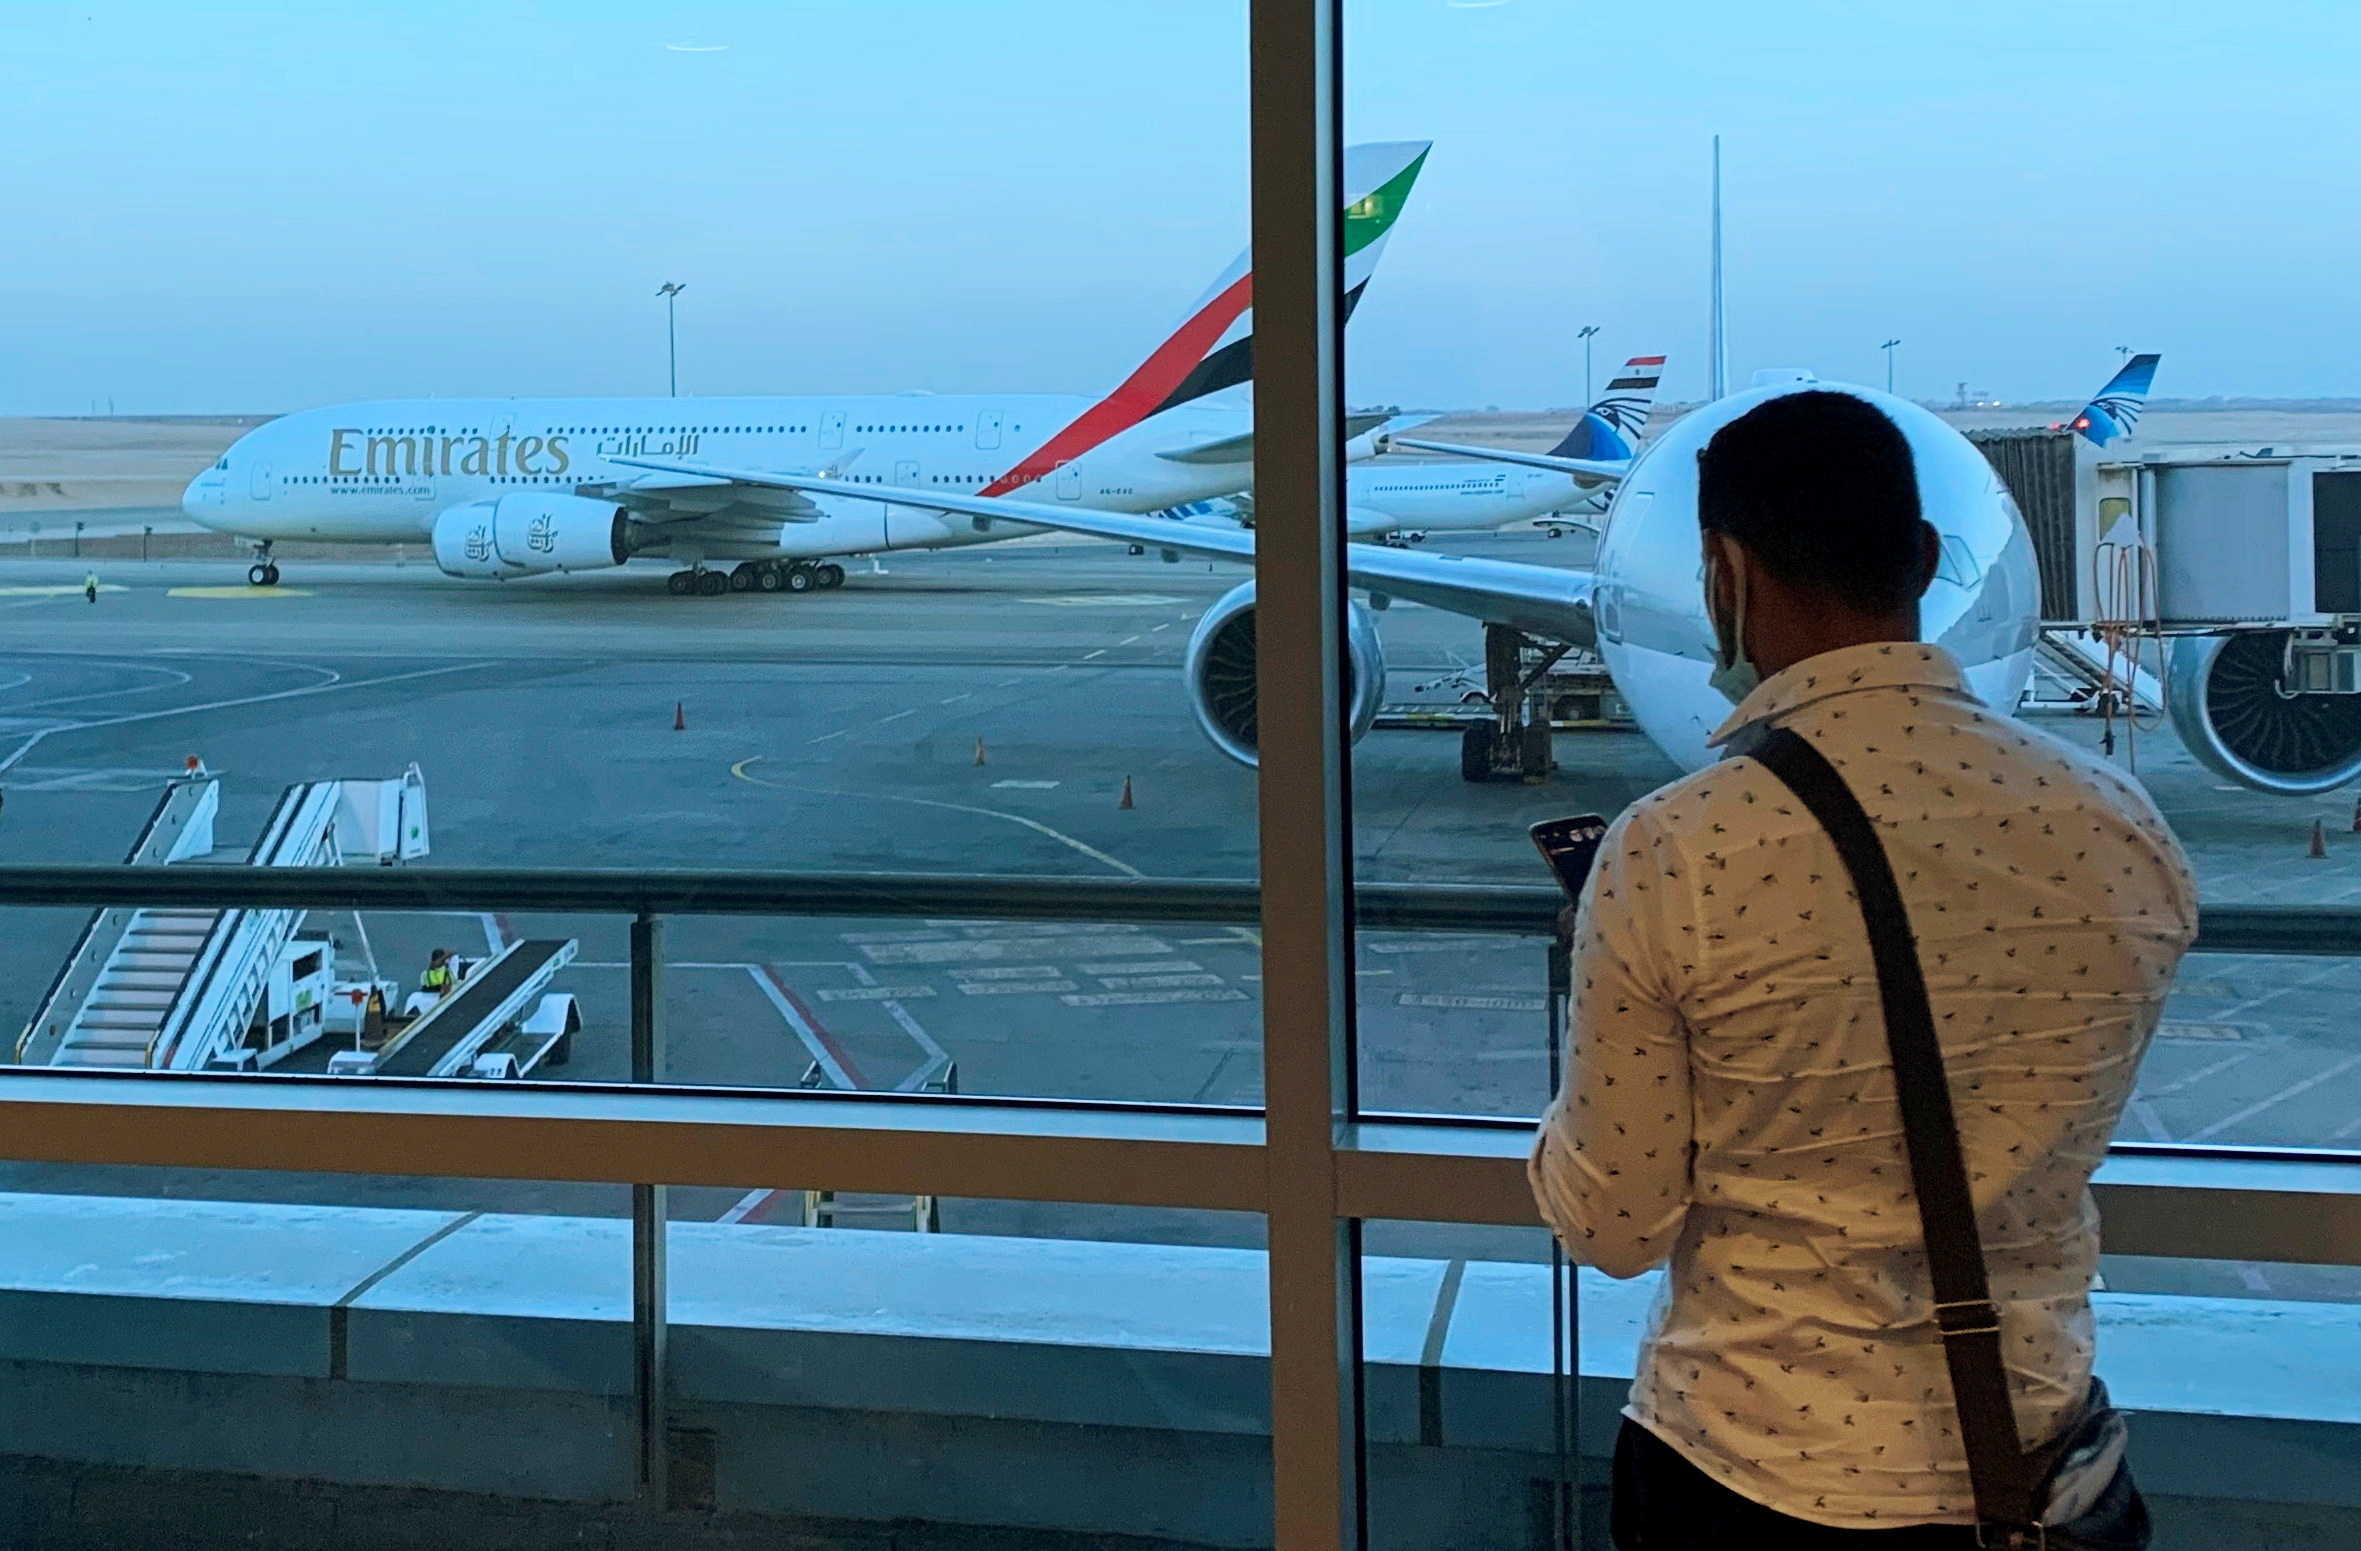 A passenger waits for his Emirates Airlines' flight departure to Dubai at Cairo's International Airport, Egypt July 20, 2021. REUTERS/Amr Abdallah Dalsh